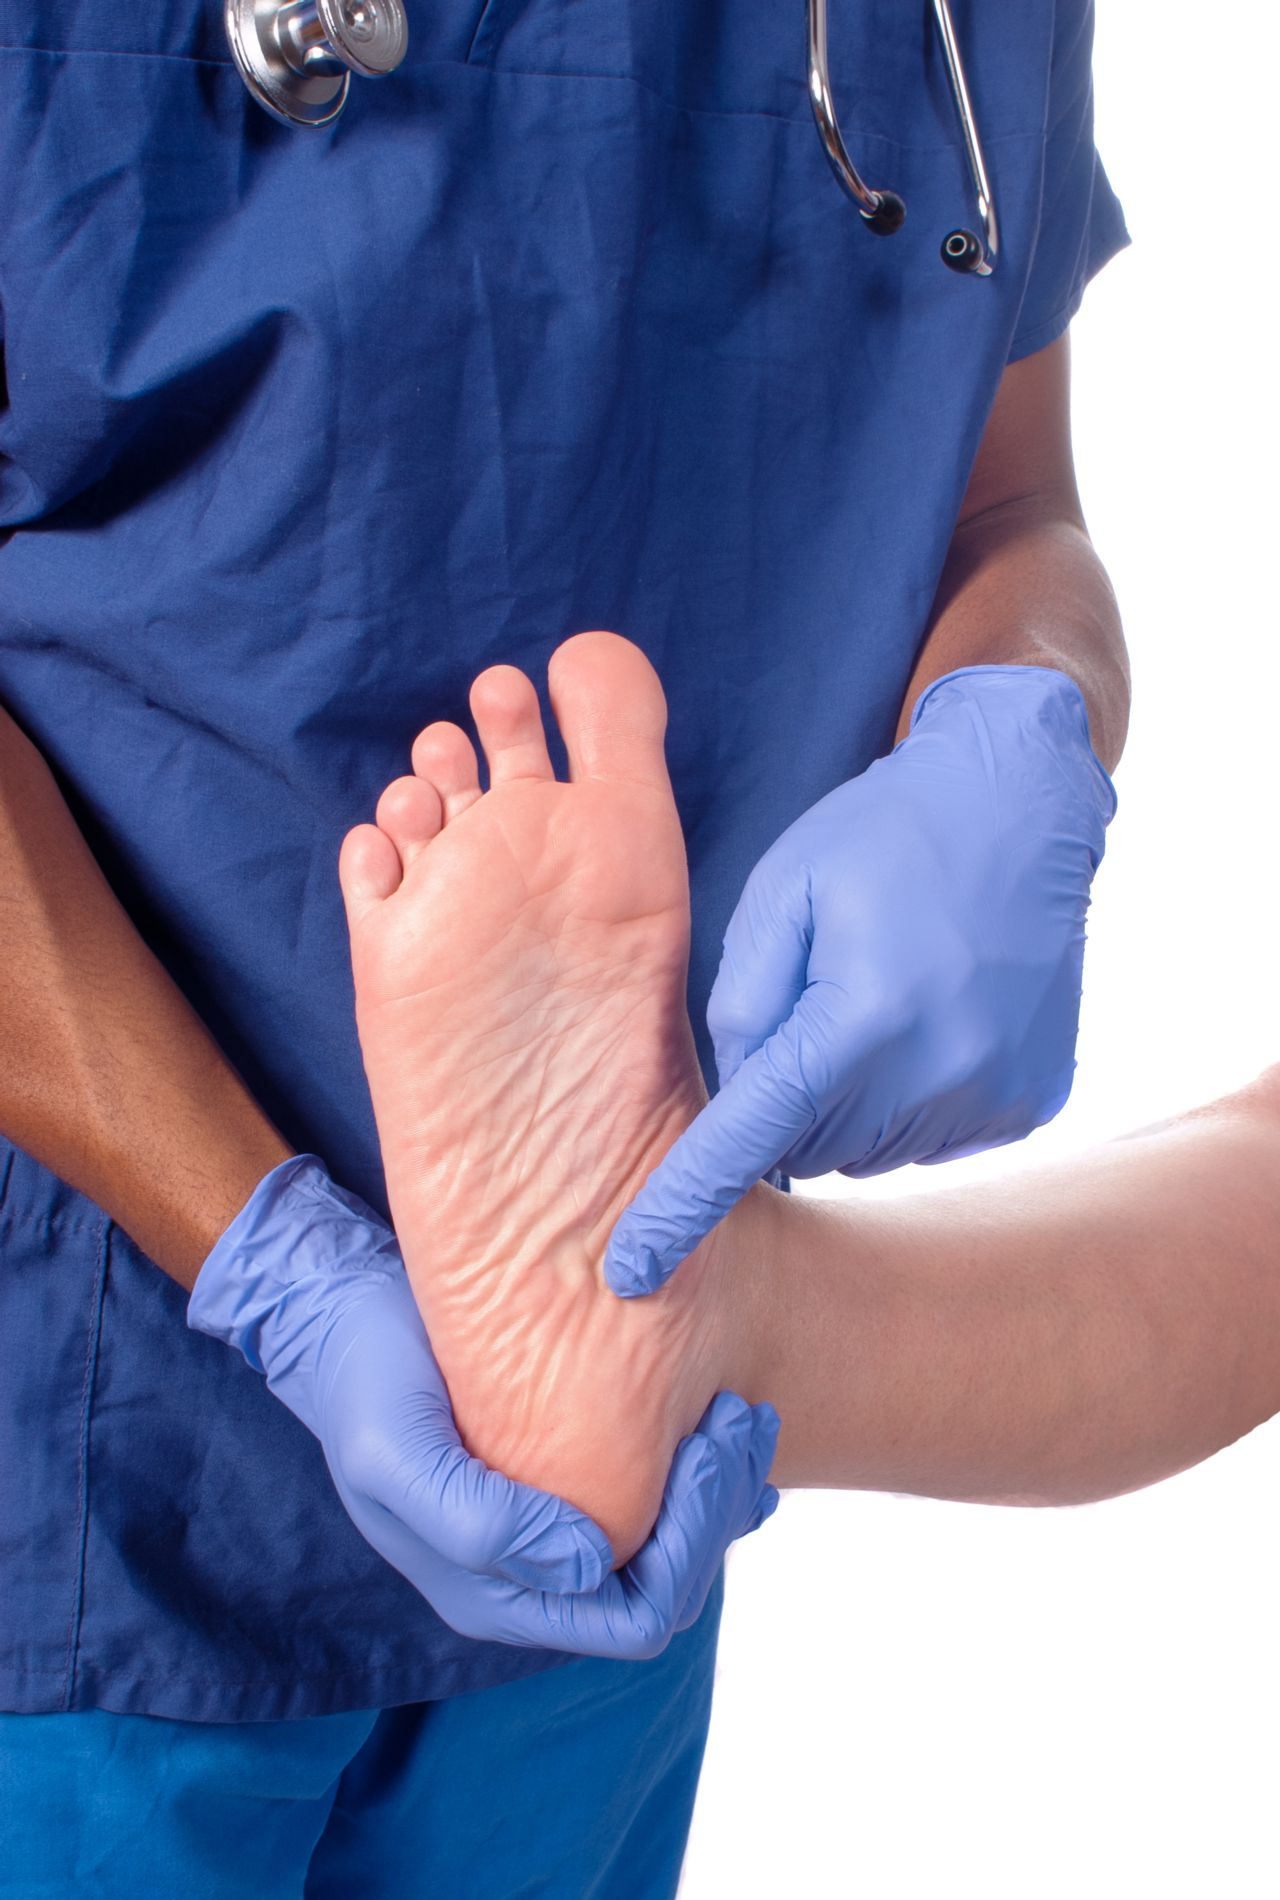 Surgeon pointing at foot